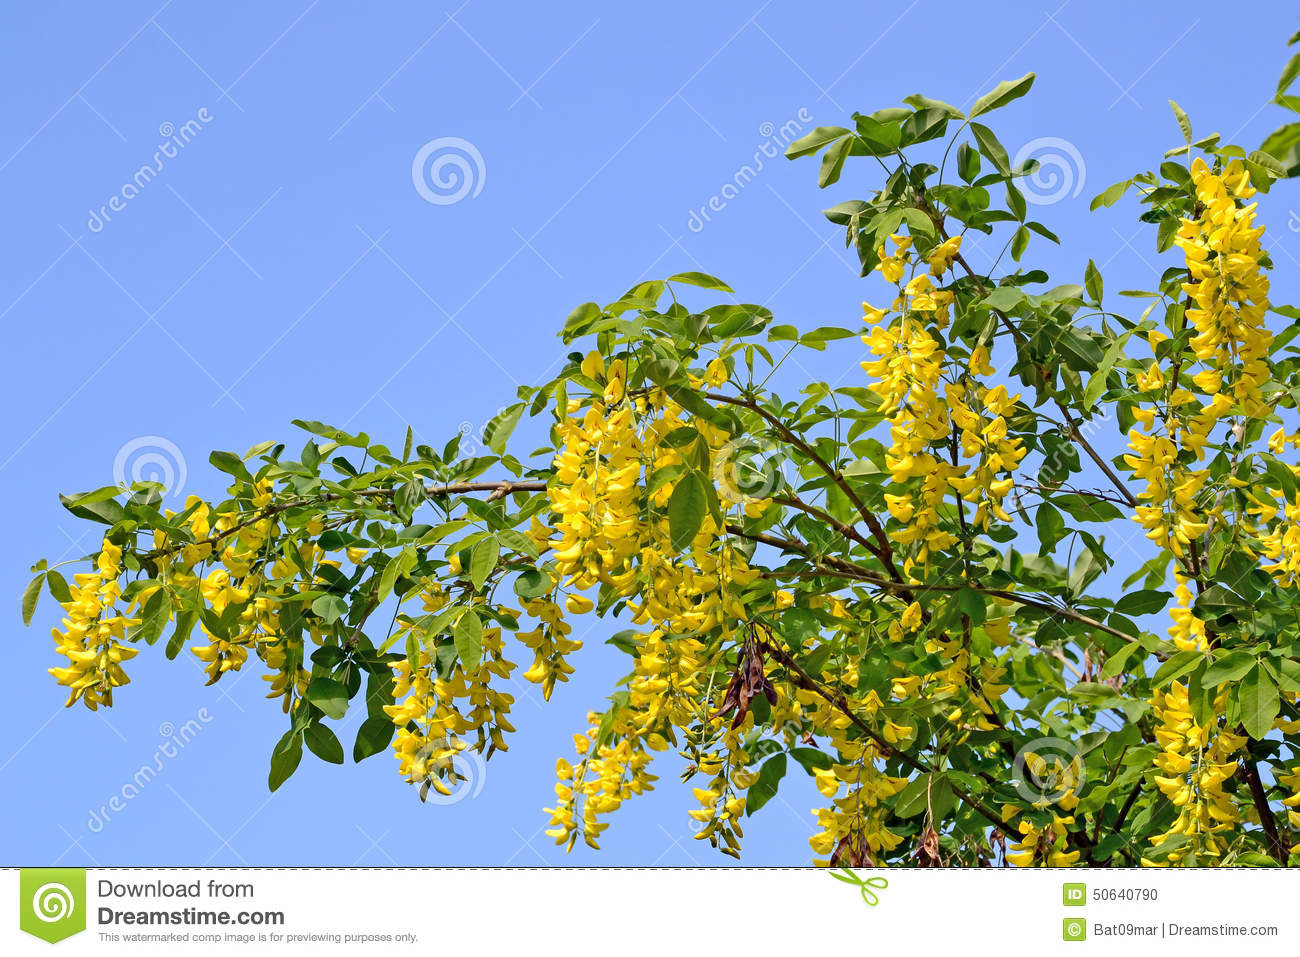 Laburnum tree blooming stock photo image of yellow horticulture 50640790 - Trees that bloom yellow flowers ...